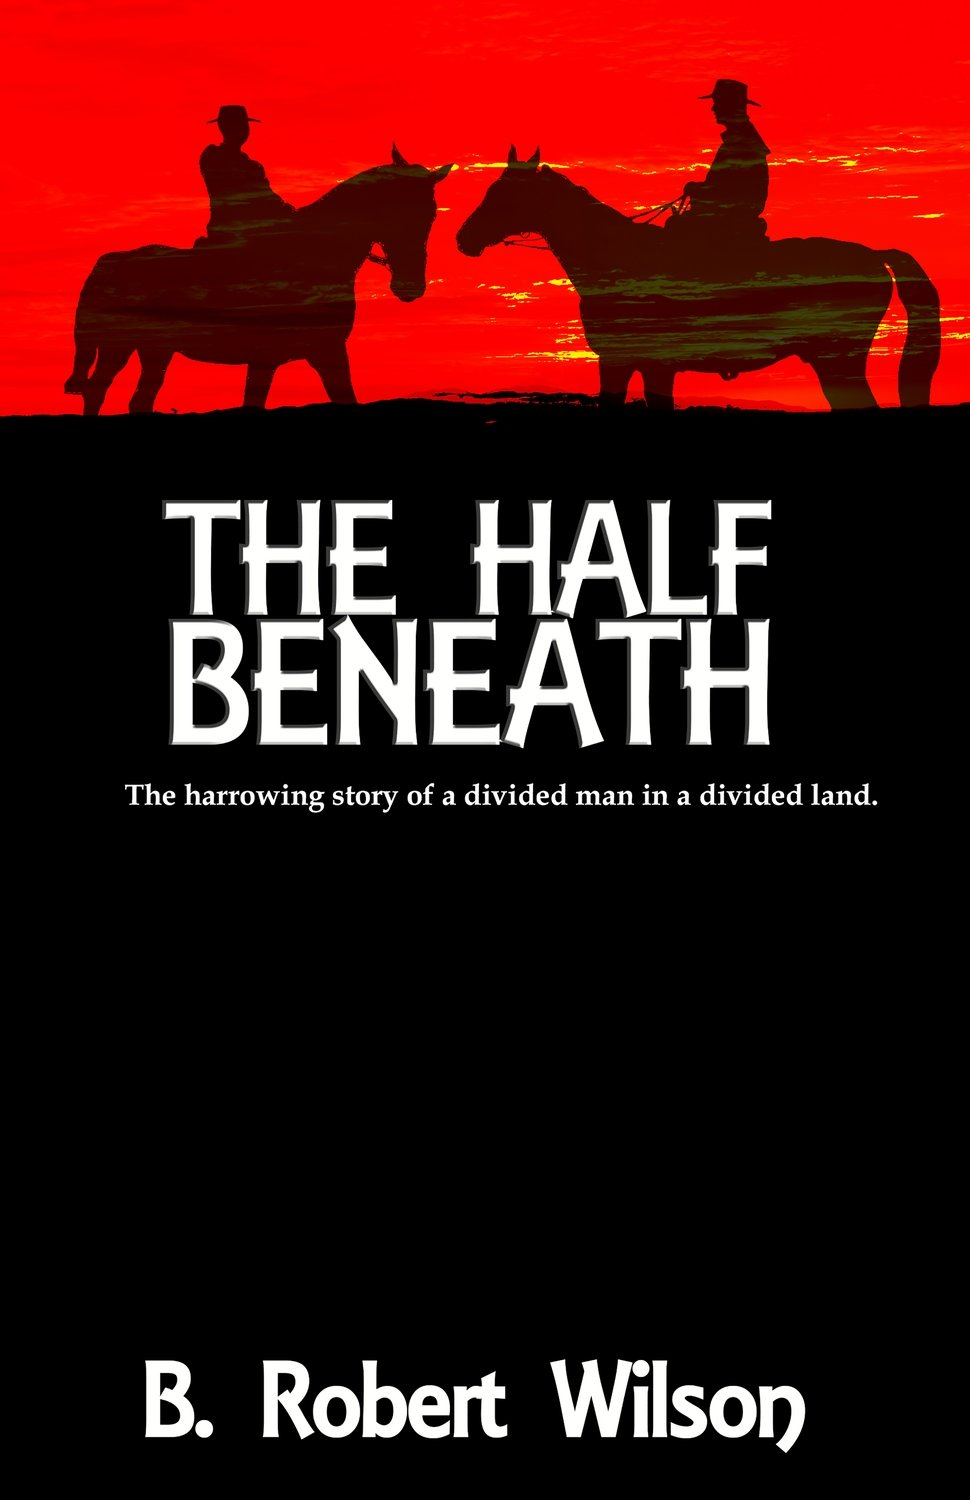 The Half Beneath